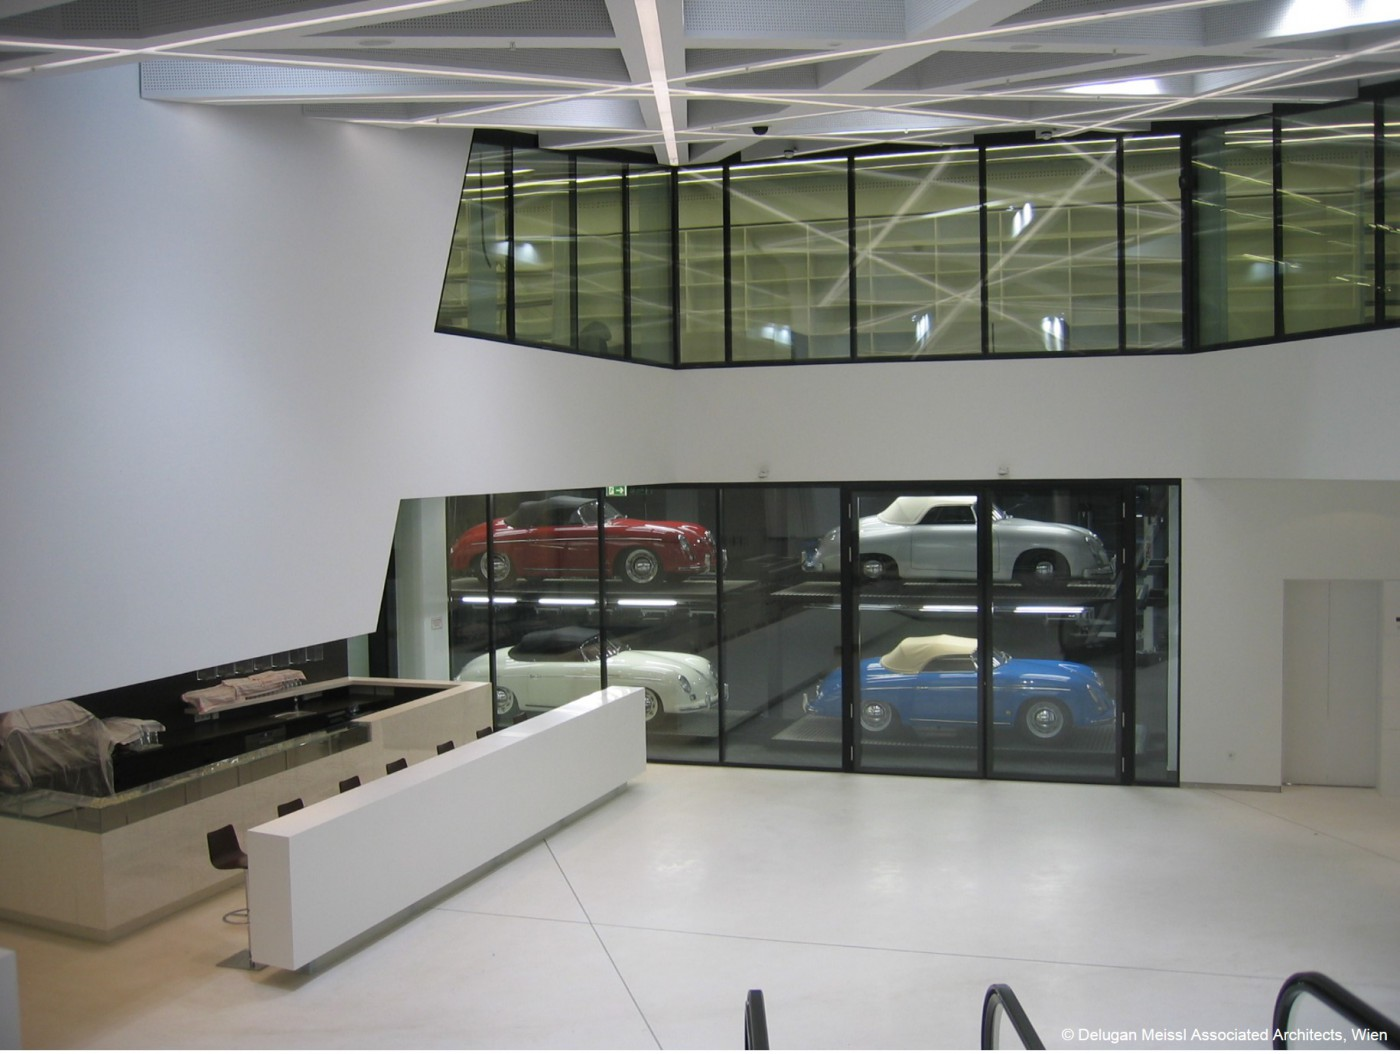 npm_Porschemuseum_04_copyright_delugan Meissl Architects